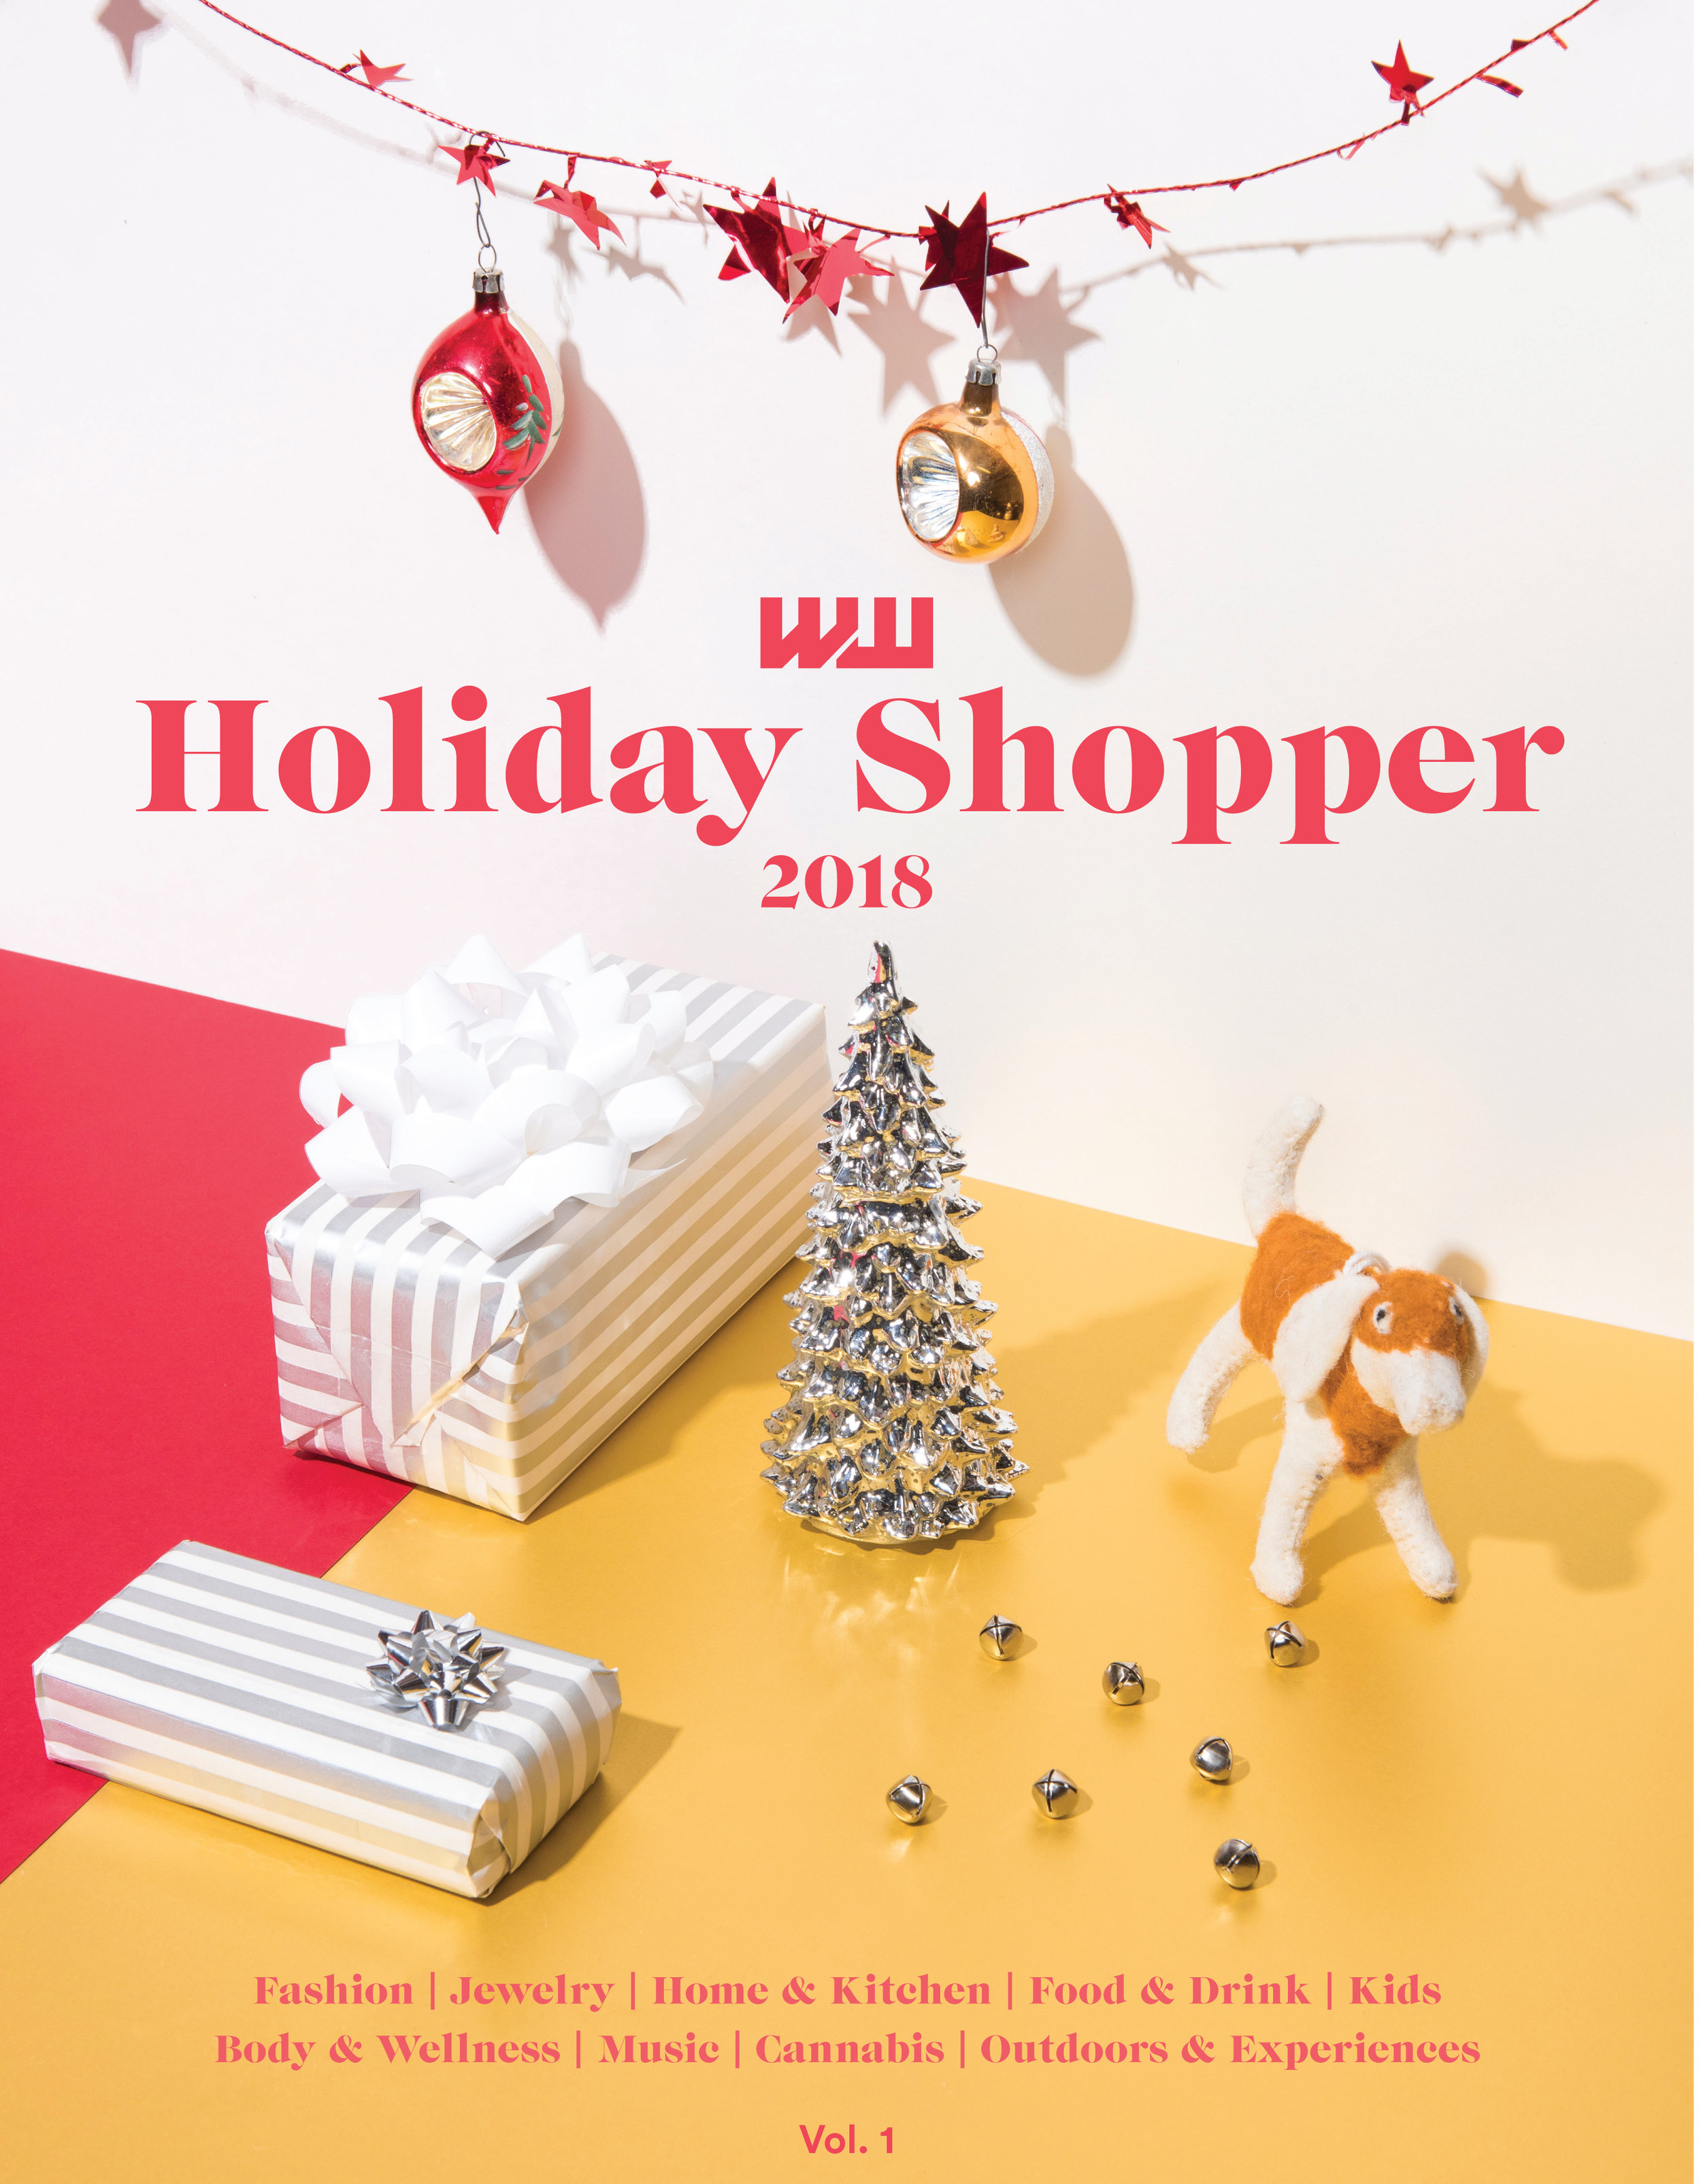 HOLIDAY SHOPPER #1 - Product-based gift pages across a wide range of consumer categories, our annual shoppers are some of our most used issues of the year.